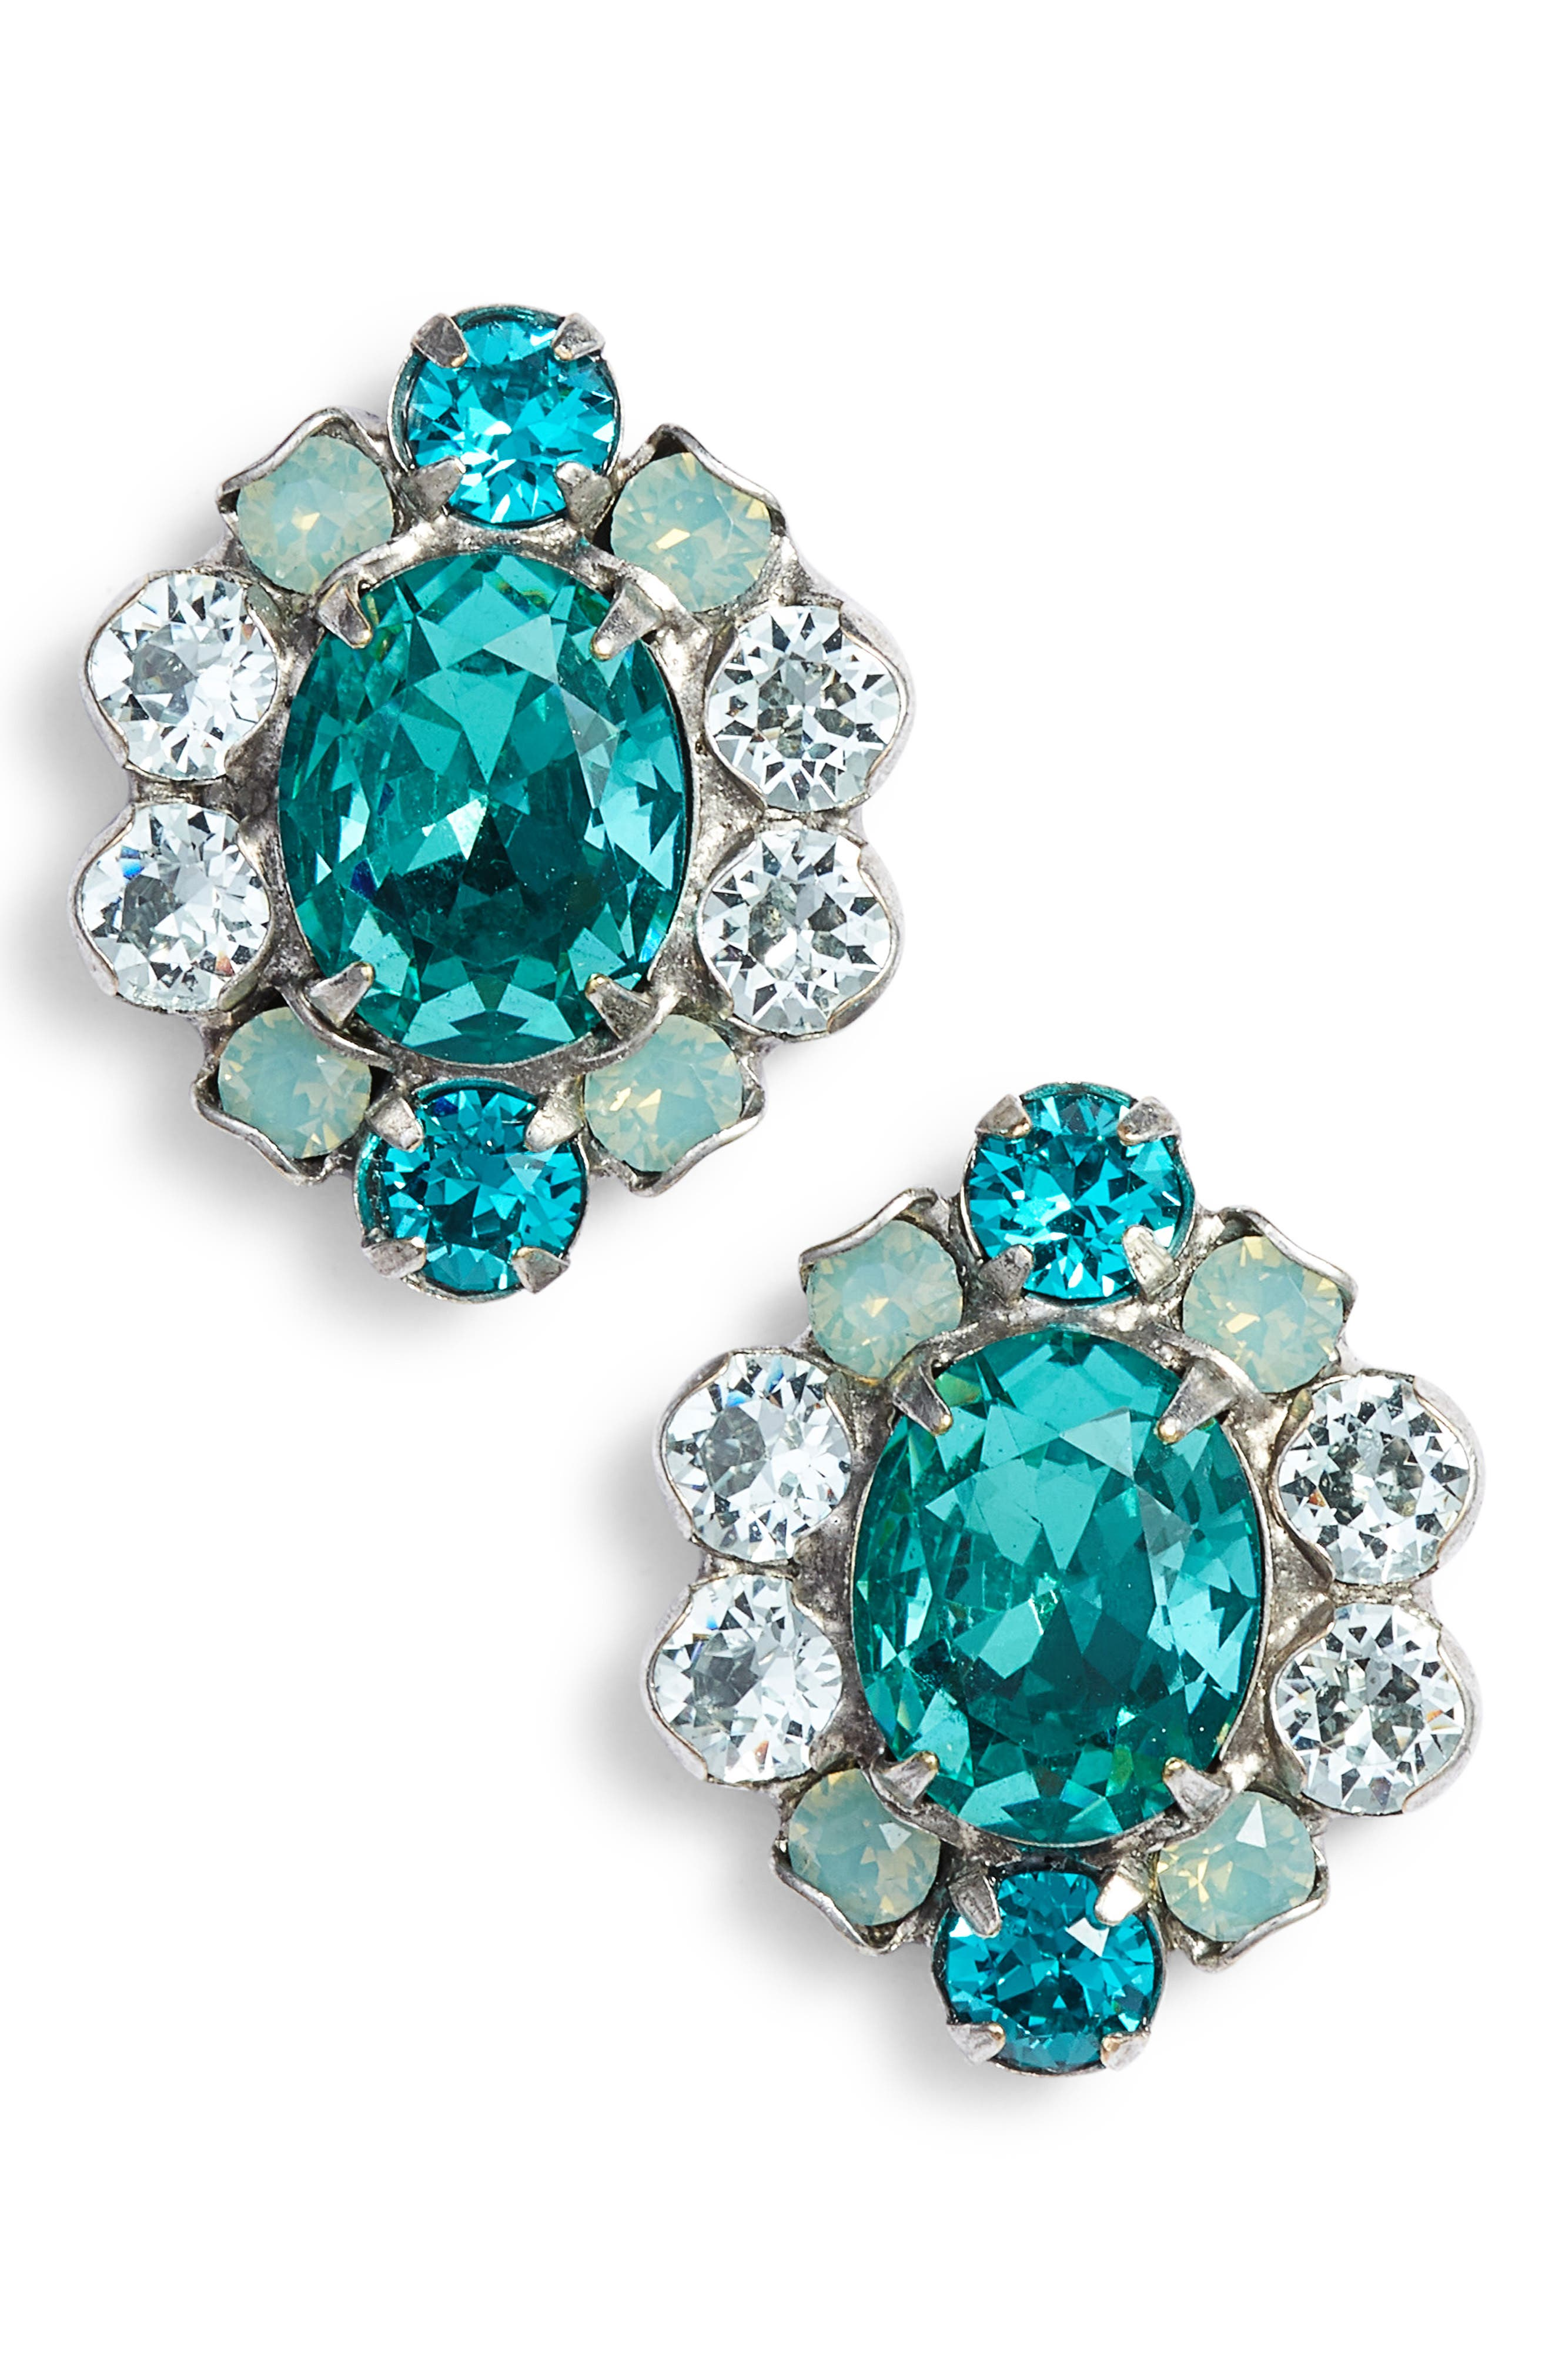 Sundrop Crystal Earrings,                         Main,                         color, Blue-Green